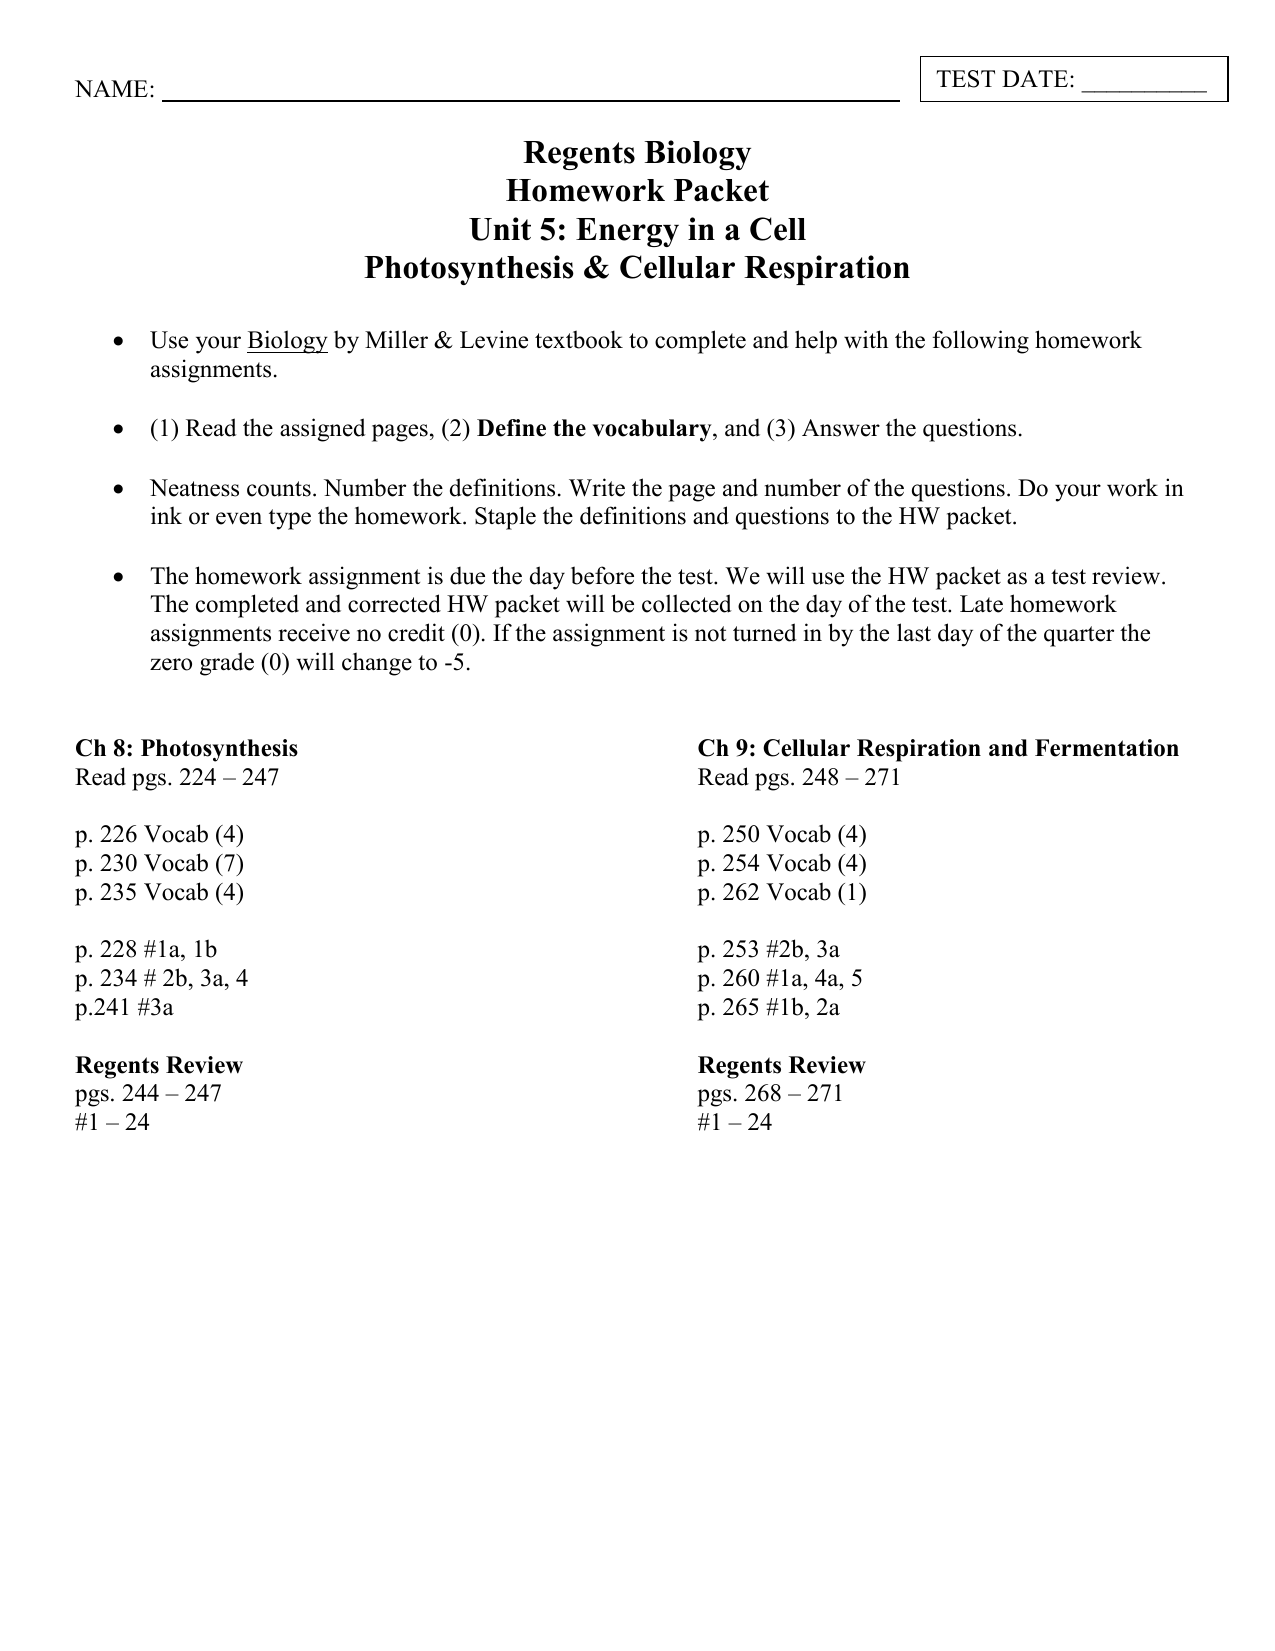 worksheet Chapter 9 Energy In A Cell Worksheet photosynthesis and cellular respiration